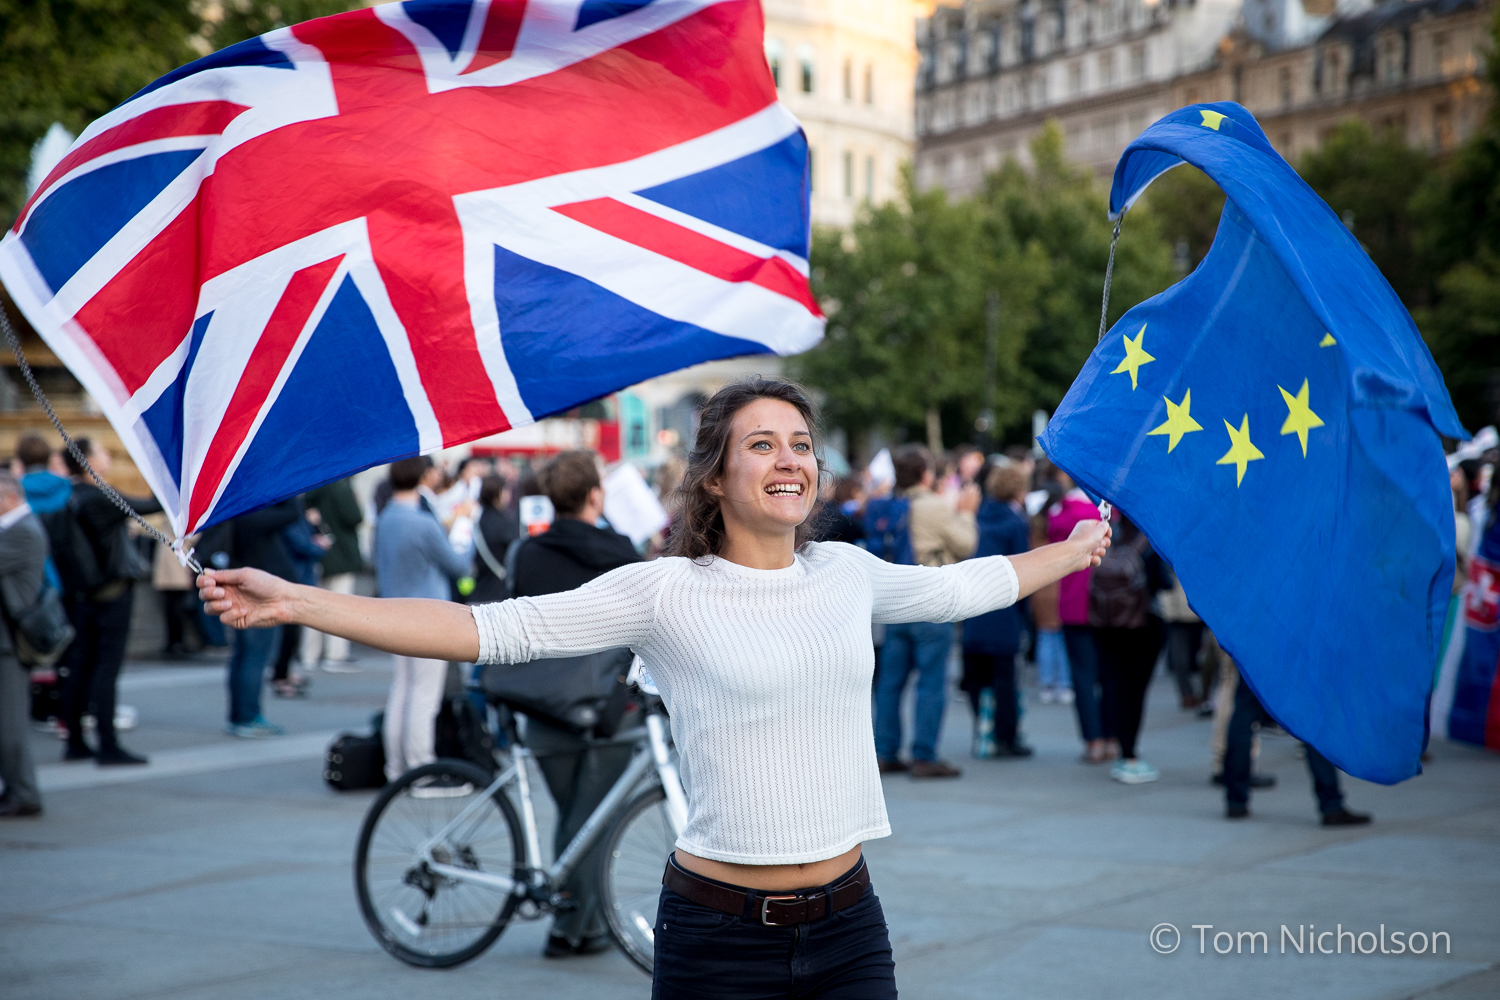 ©2017 Tom Nicholson. 13/09/2017. London, UK. An activist campaigns in Trafalgar Square for the rights of EU citizens in the UK and British citizens in Europe following Brexit.